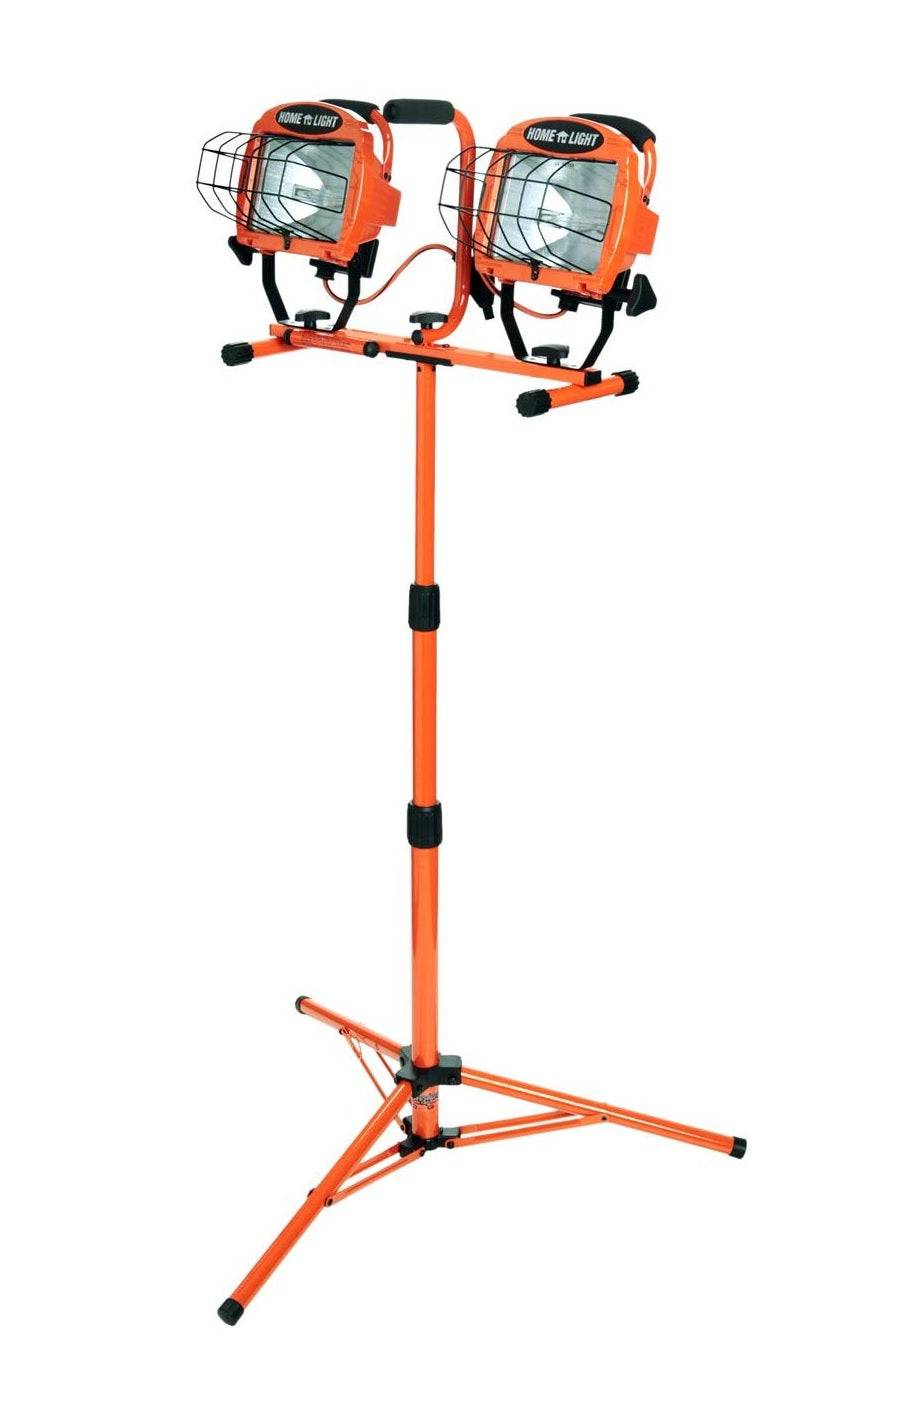 Woods L14sled Portable Stand Light, 1000w